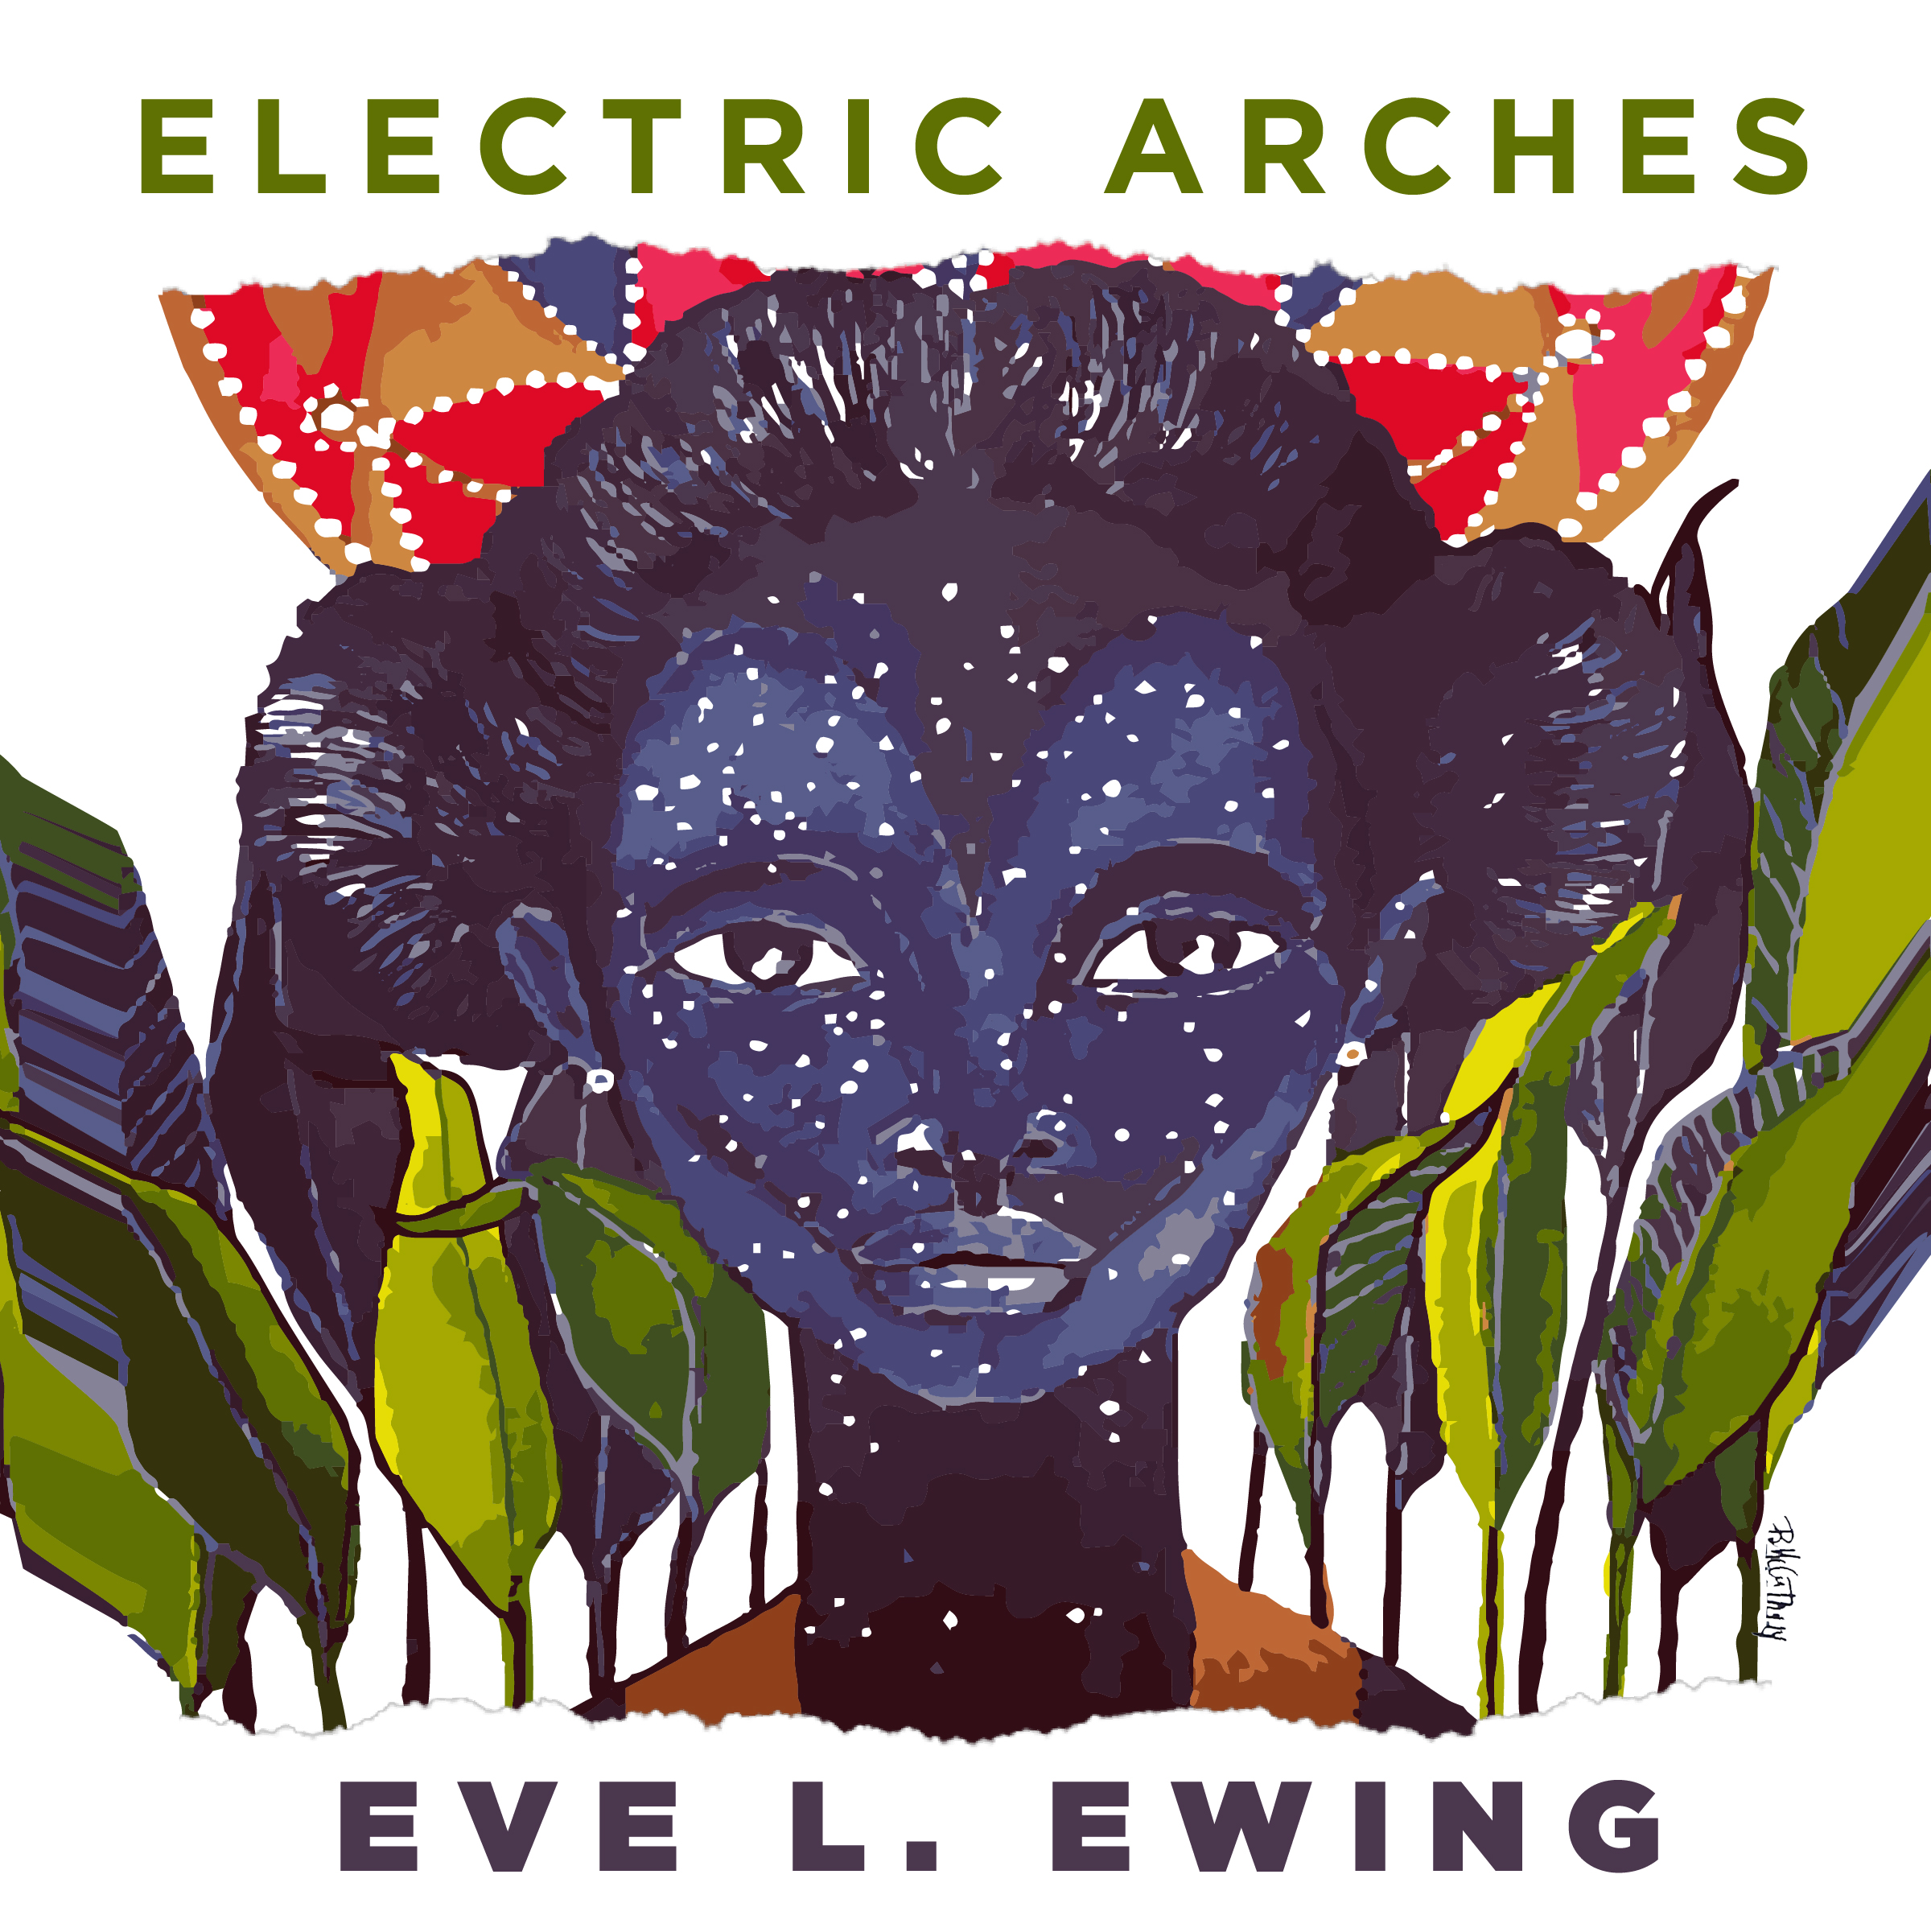 Electric-Arches (Haymarket Books).jpg